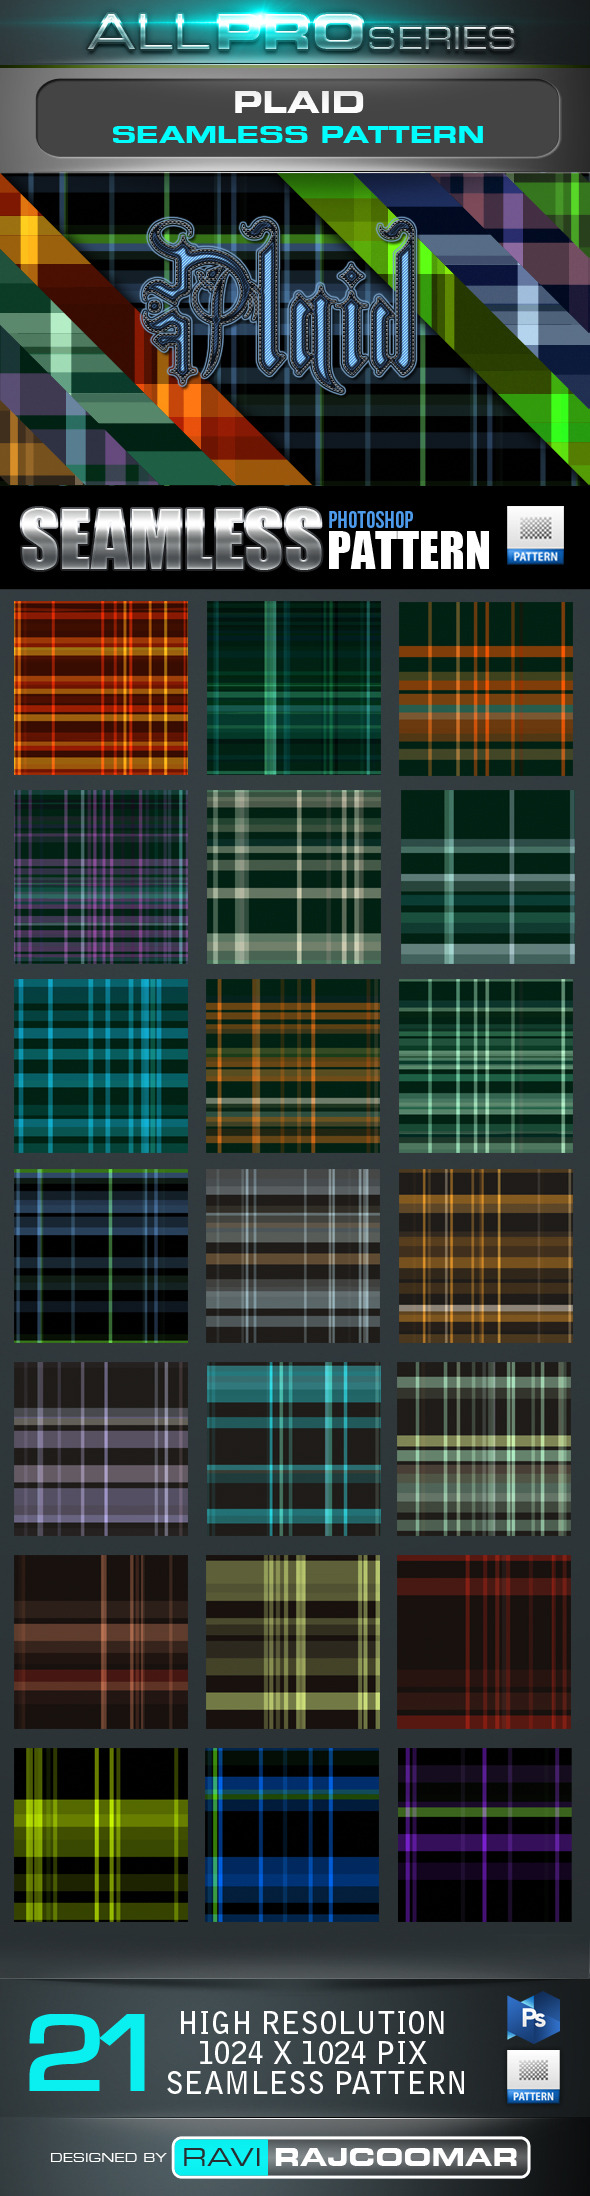 Plaid Tartan Seamless Tileable Pattern - Textures / Fills / Patterns Photoshop